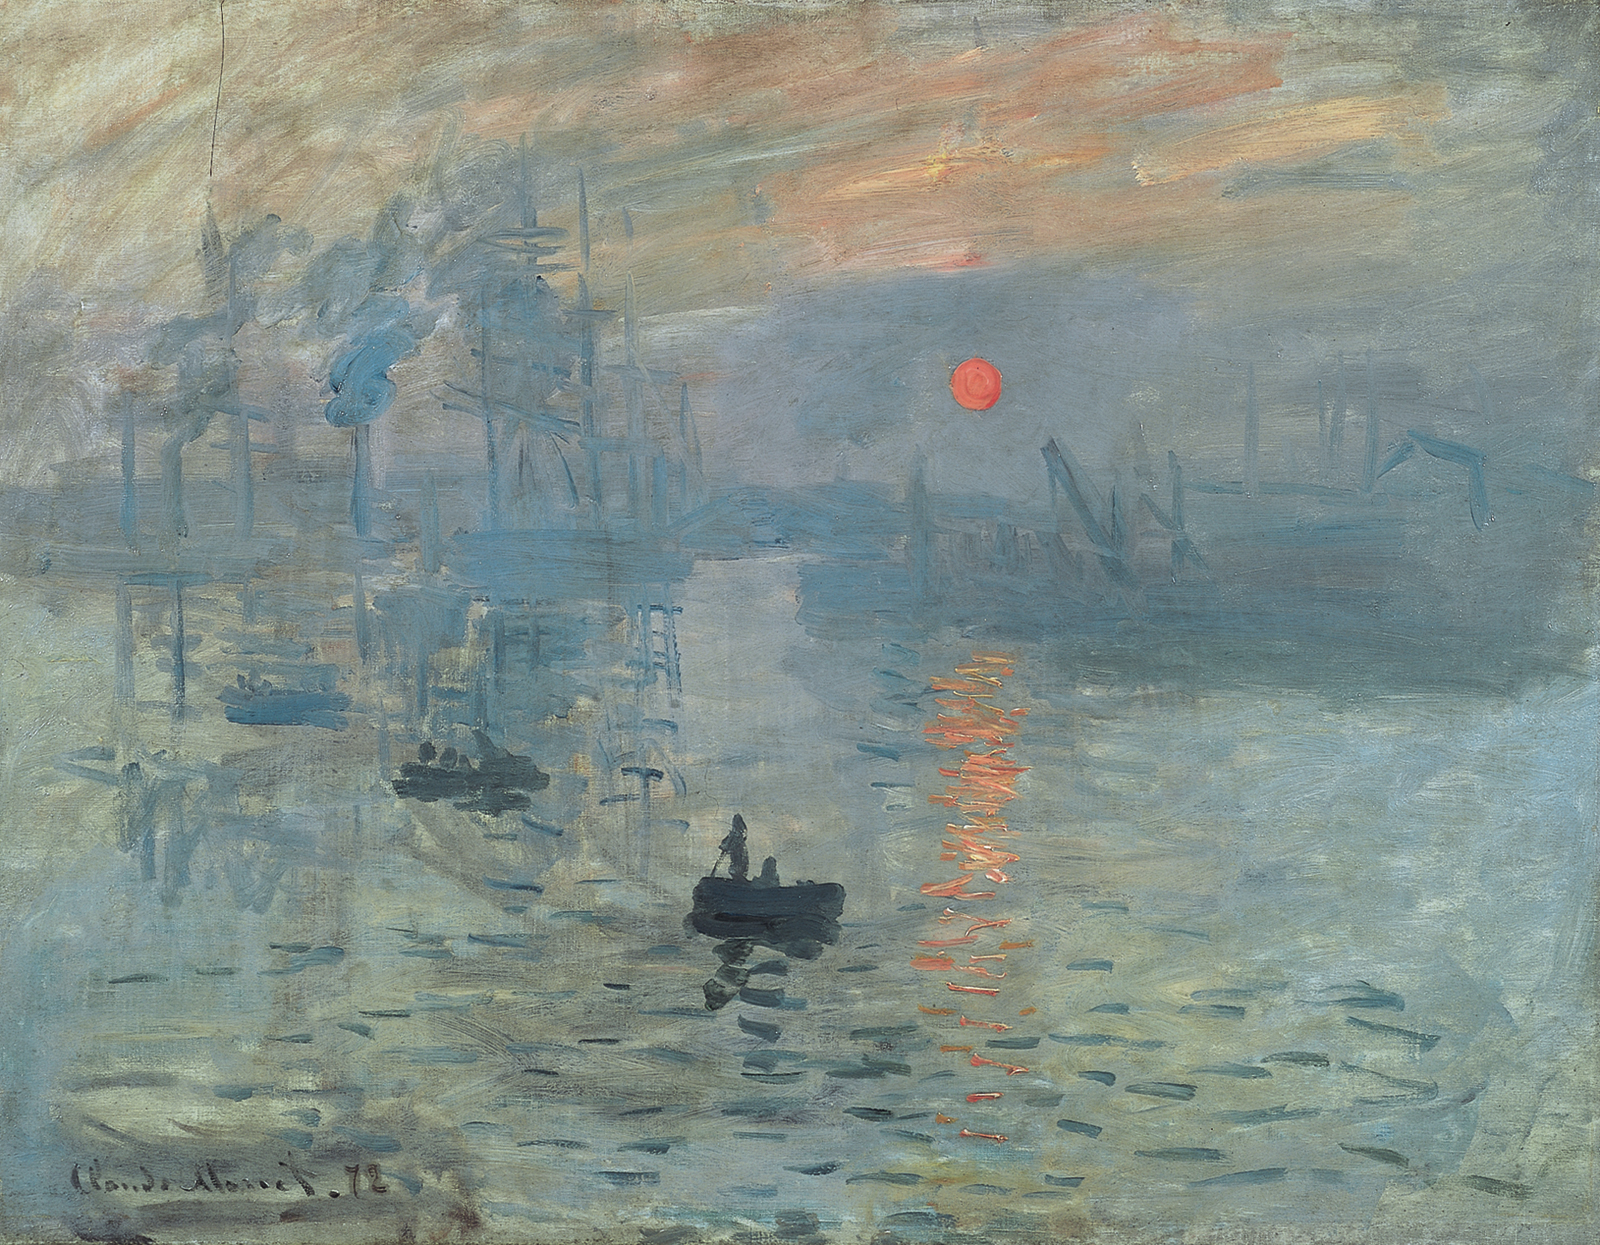 Monet painting of water and industrial scene with red sun